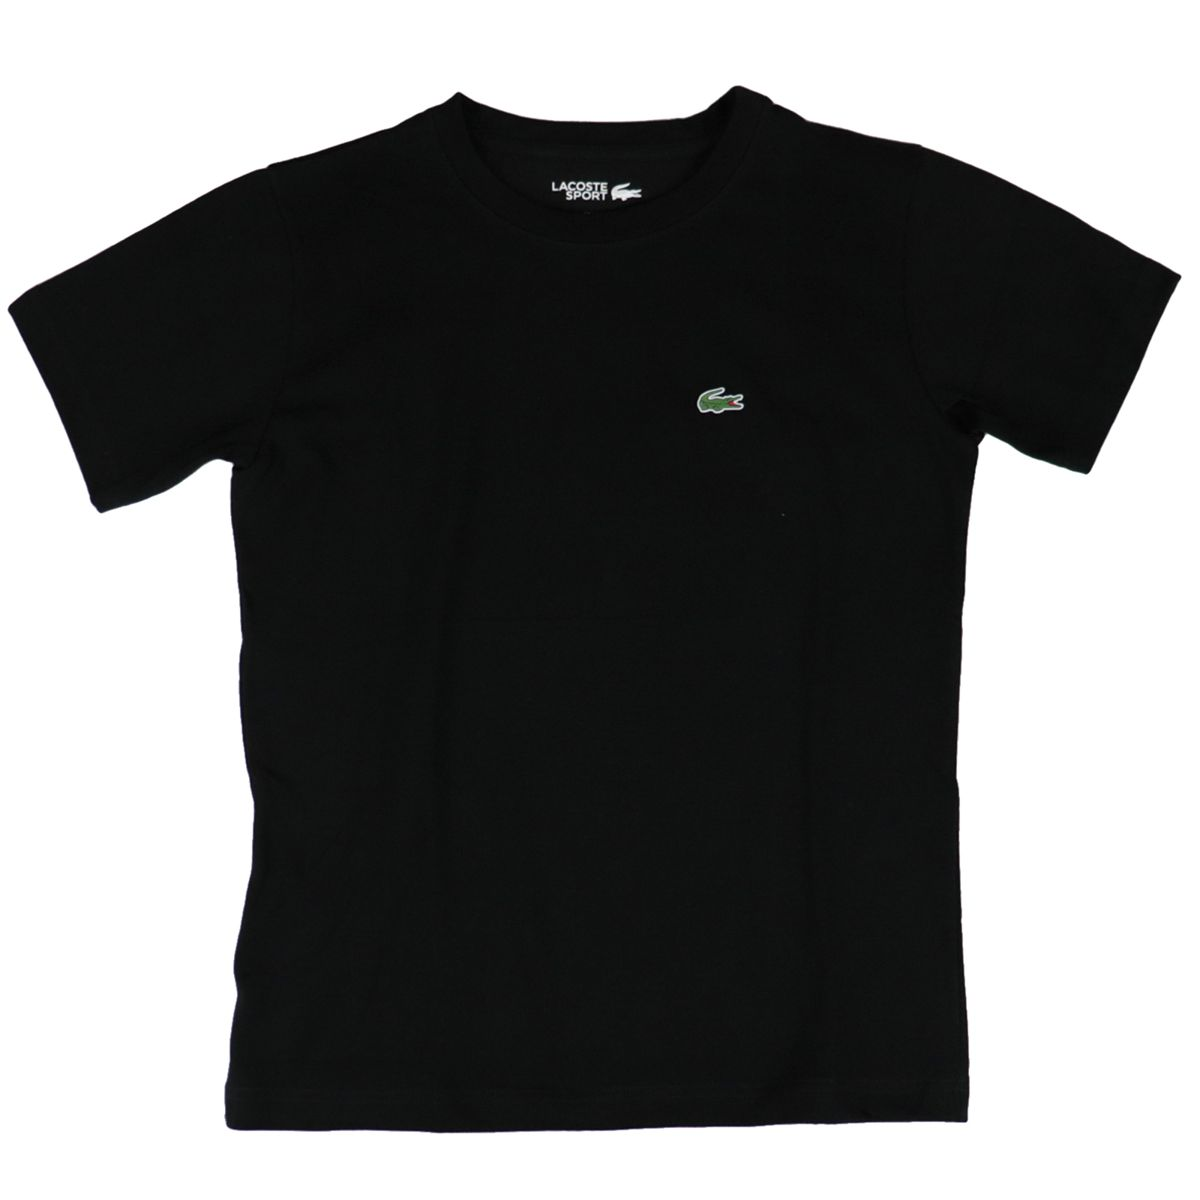 Ultra-Dry cotton blend T-shirt with small logo Black Lacoste